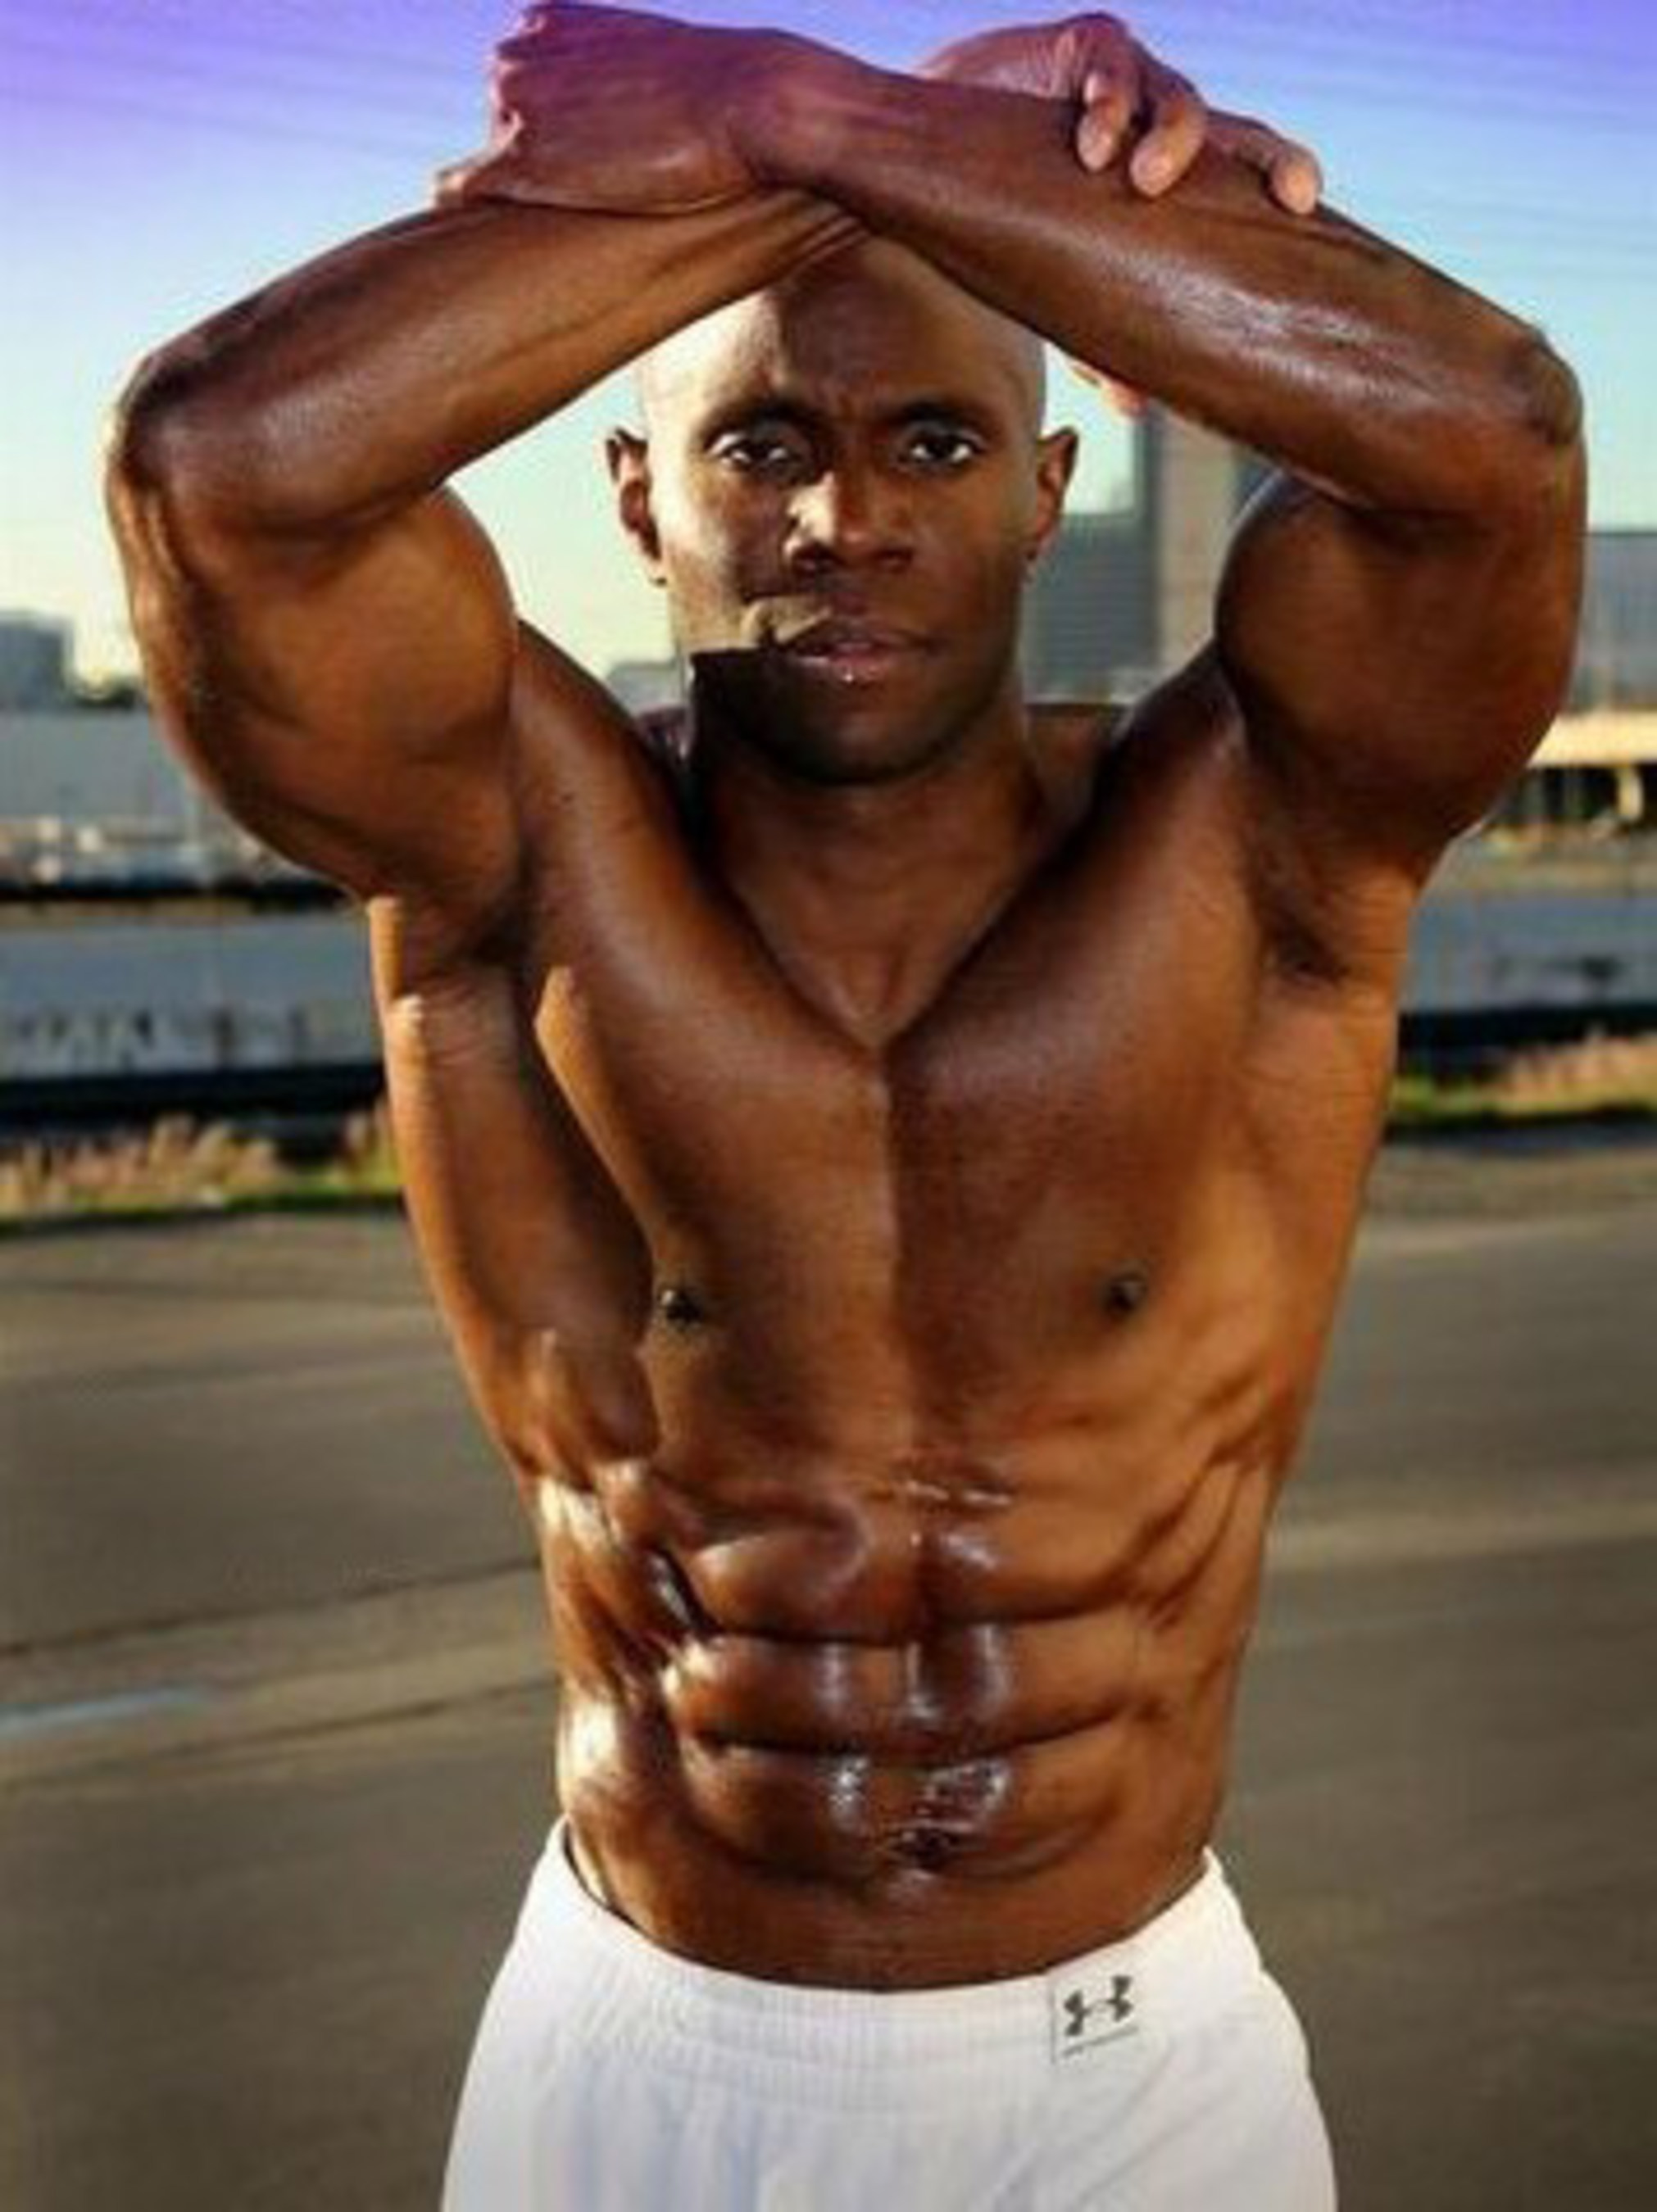 Over the past 6 years, OWNZONES spokesperson, Obi Obadike has established himself as one of the top fitness ...